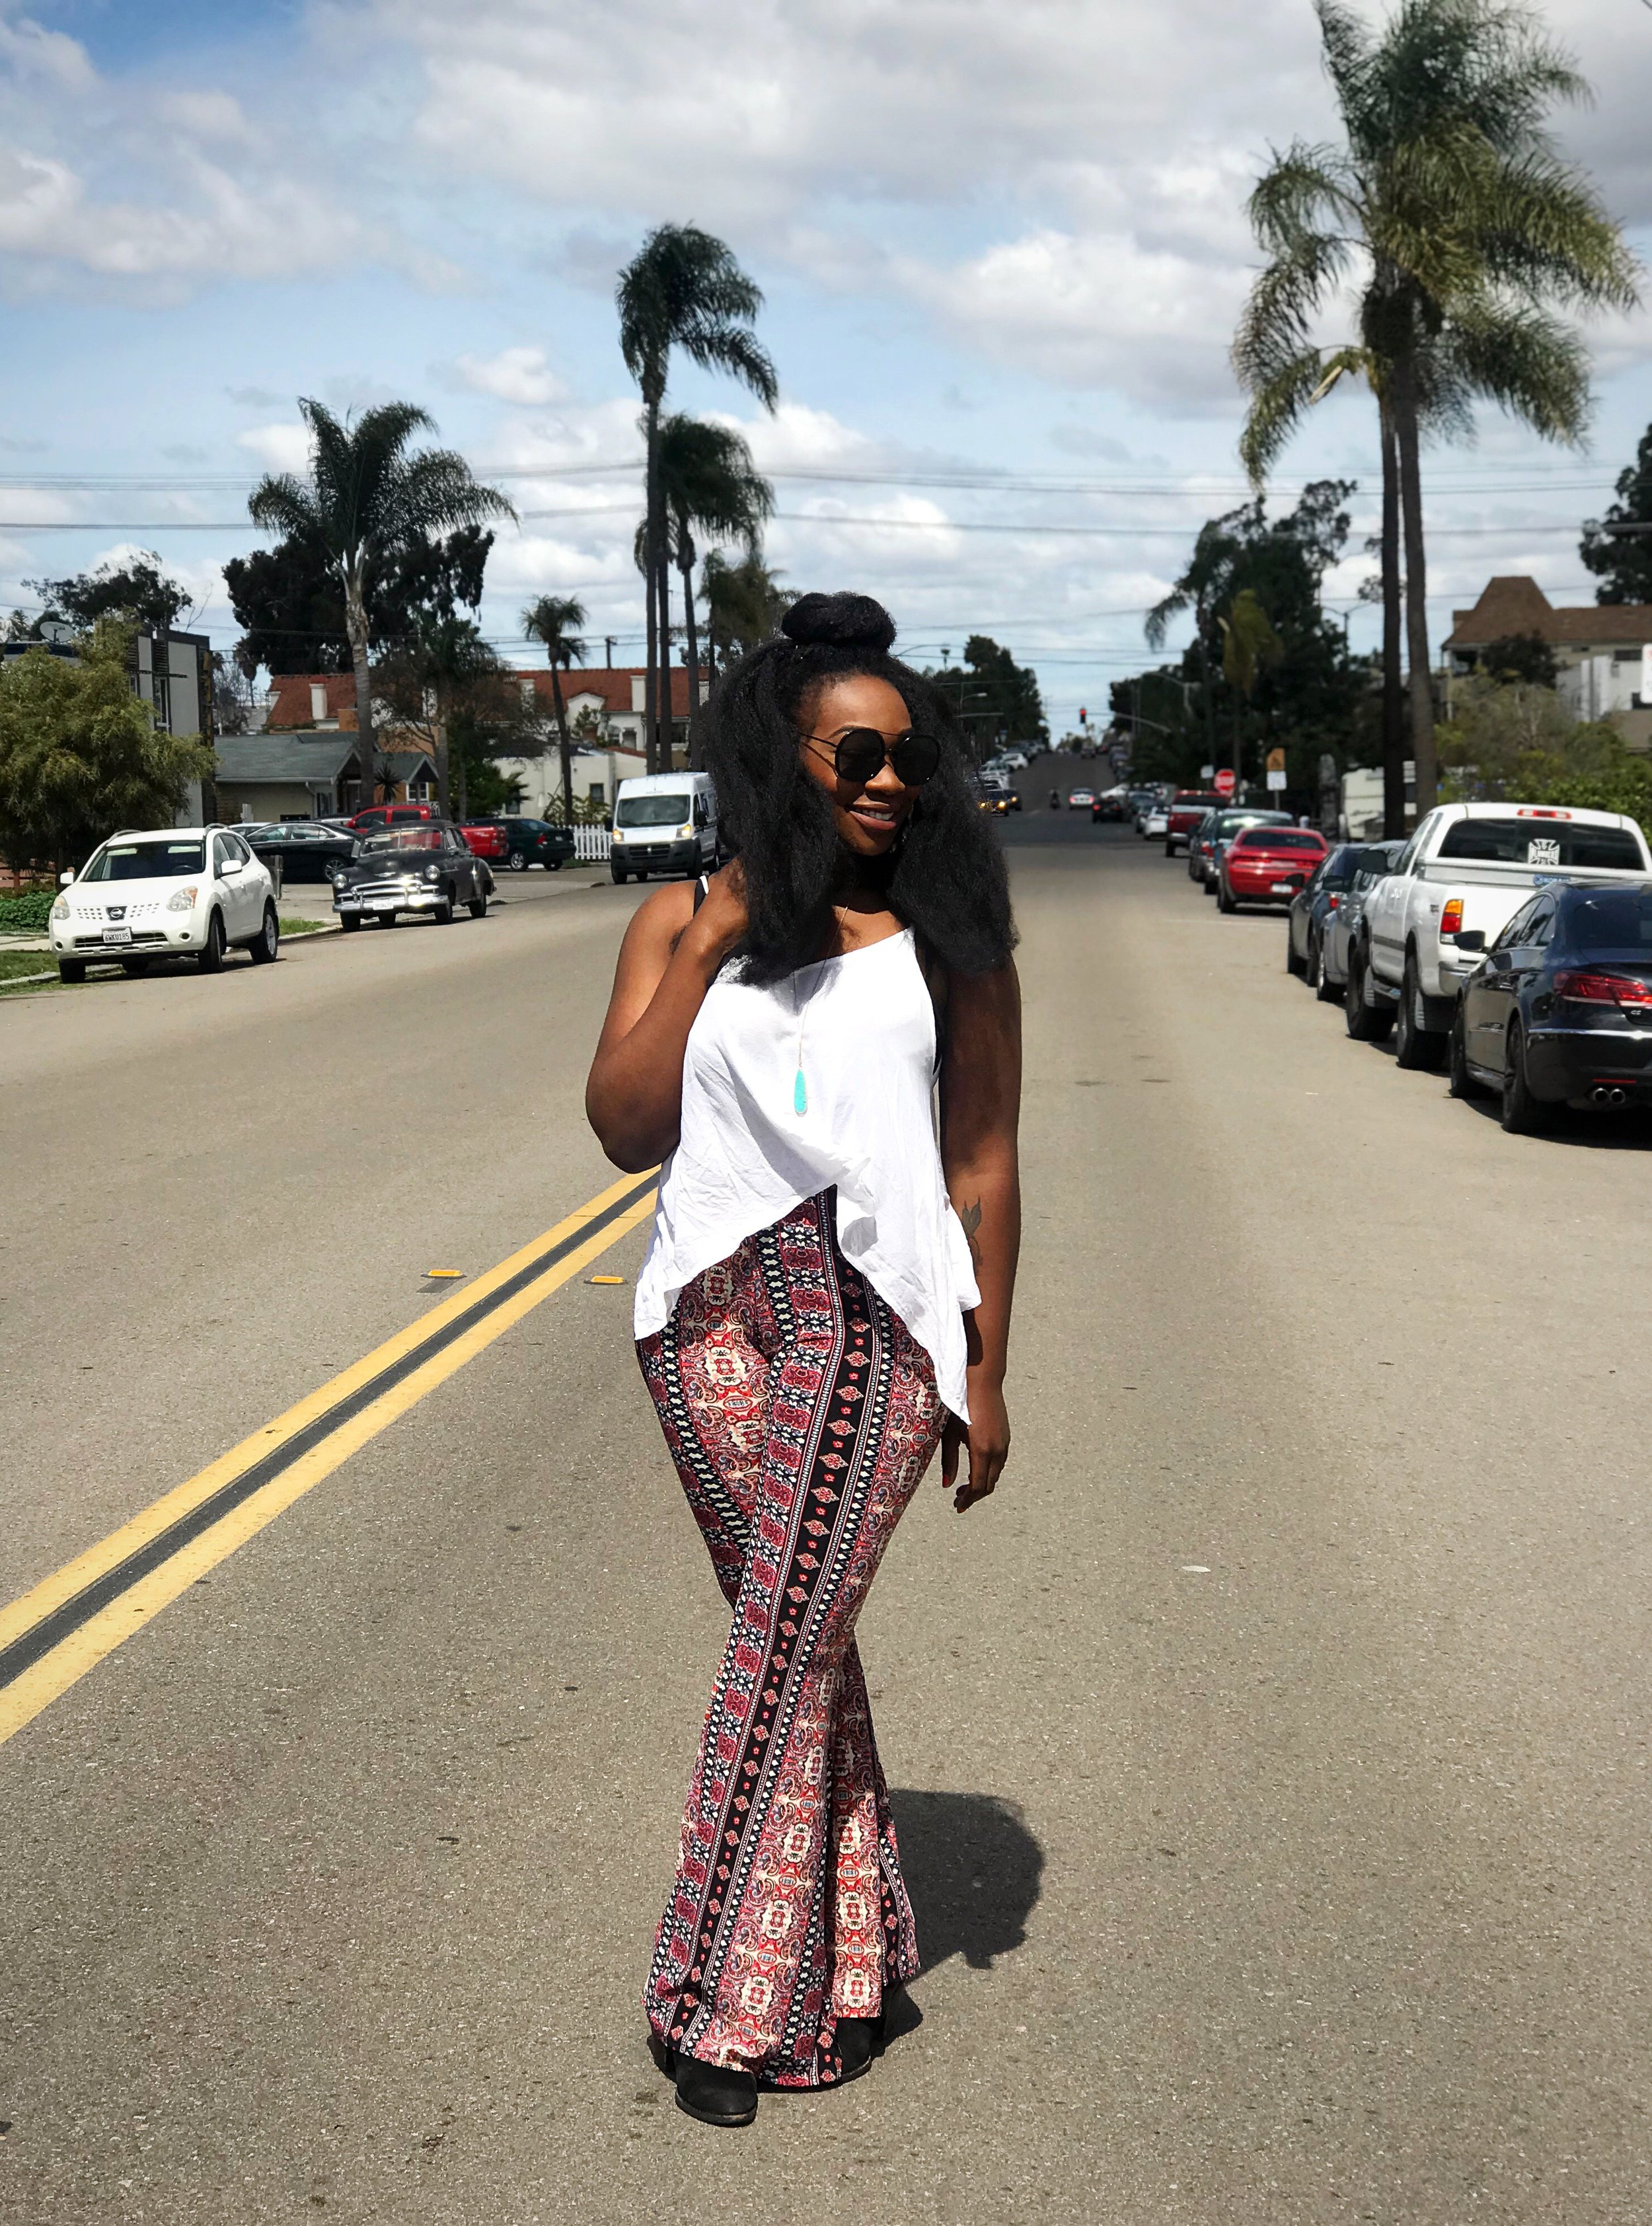 Image: Femi standing in the street wearing printed bell bottom pants, white top, turquoise stone necklace